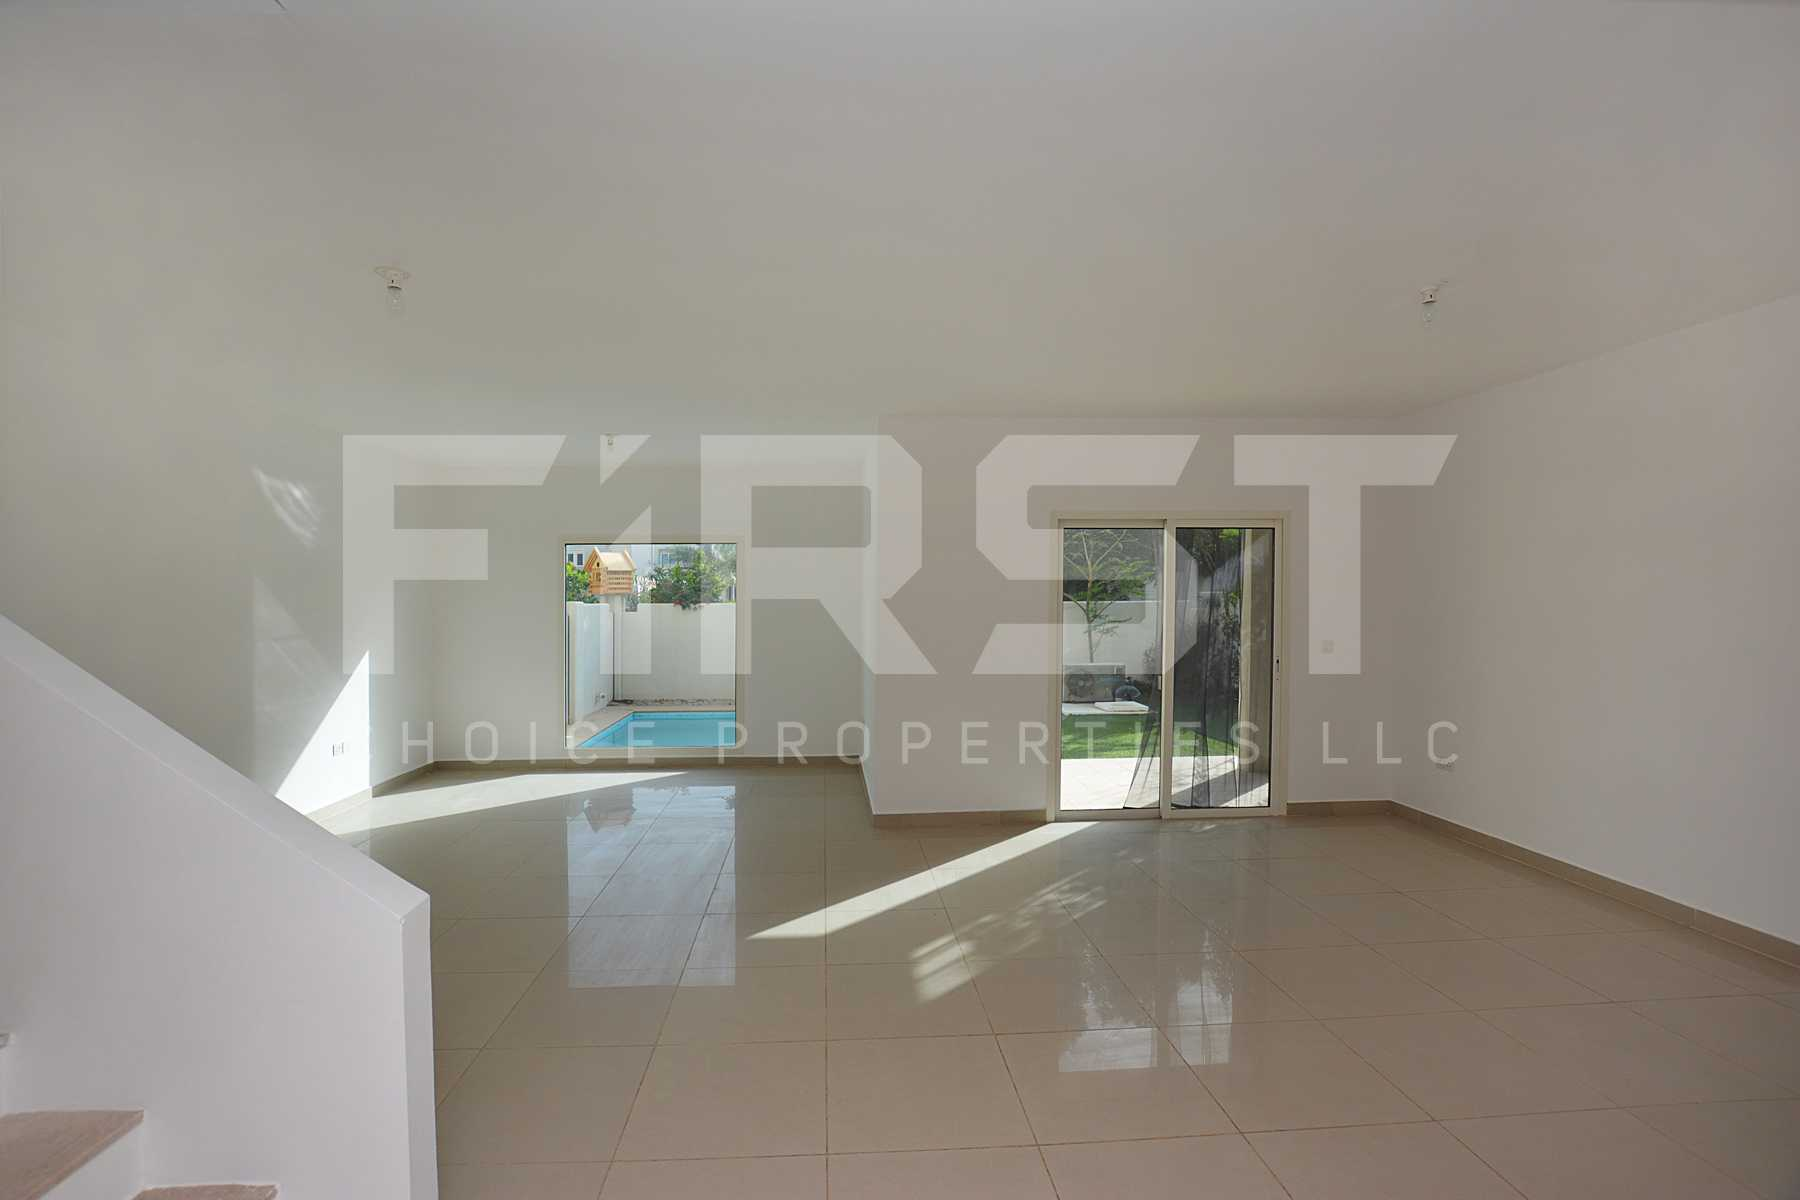 Internal Photo of 5 Bedroom Villa in Al Reef Villas 348.3 sq.m 3749 sq.ft (72).jpg